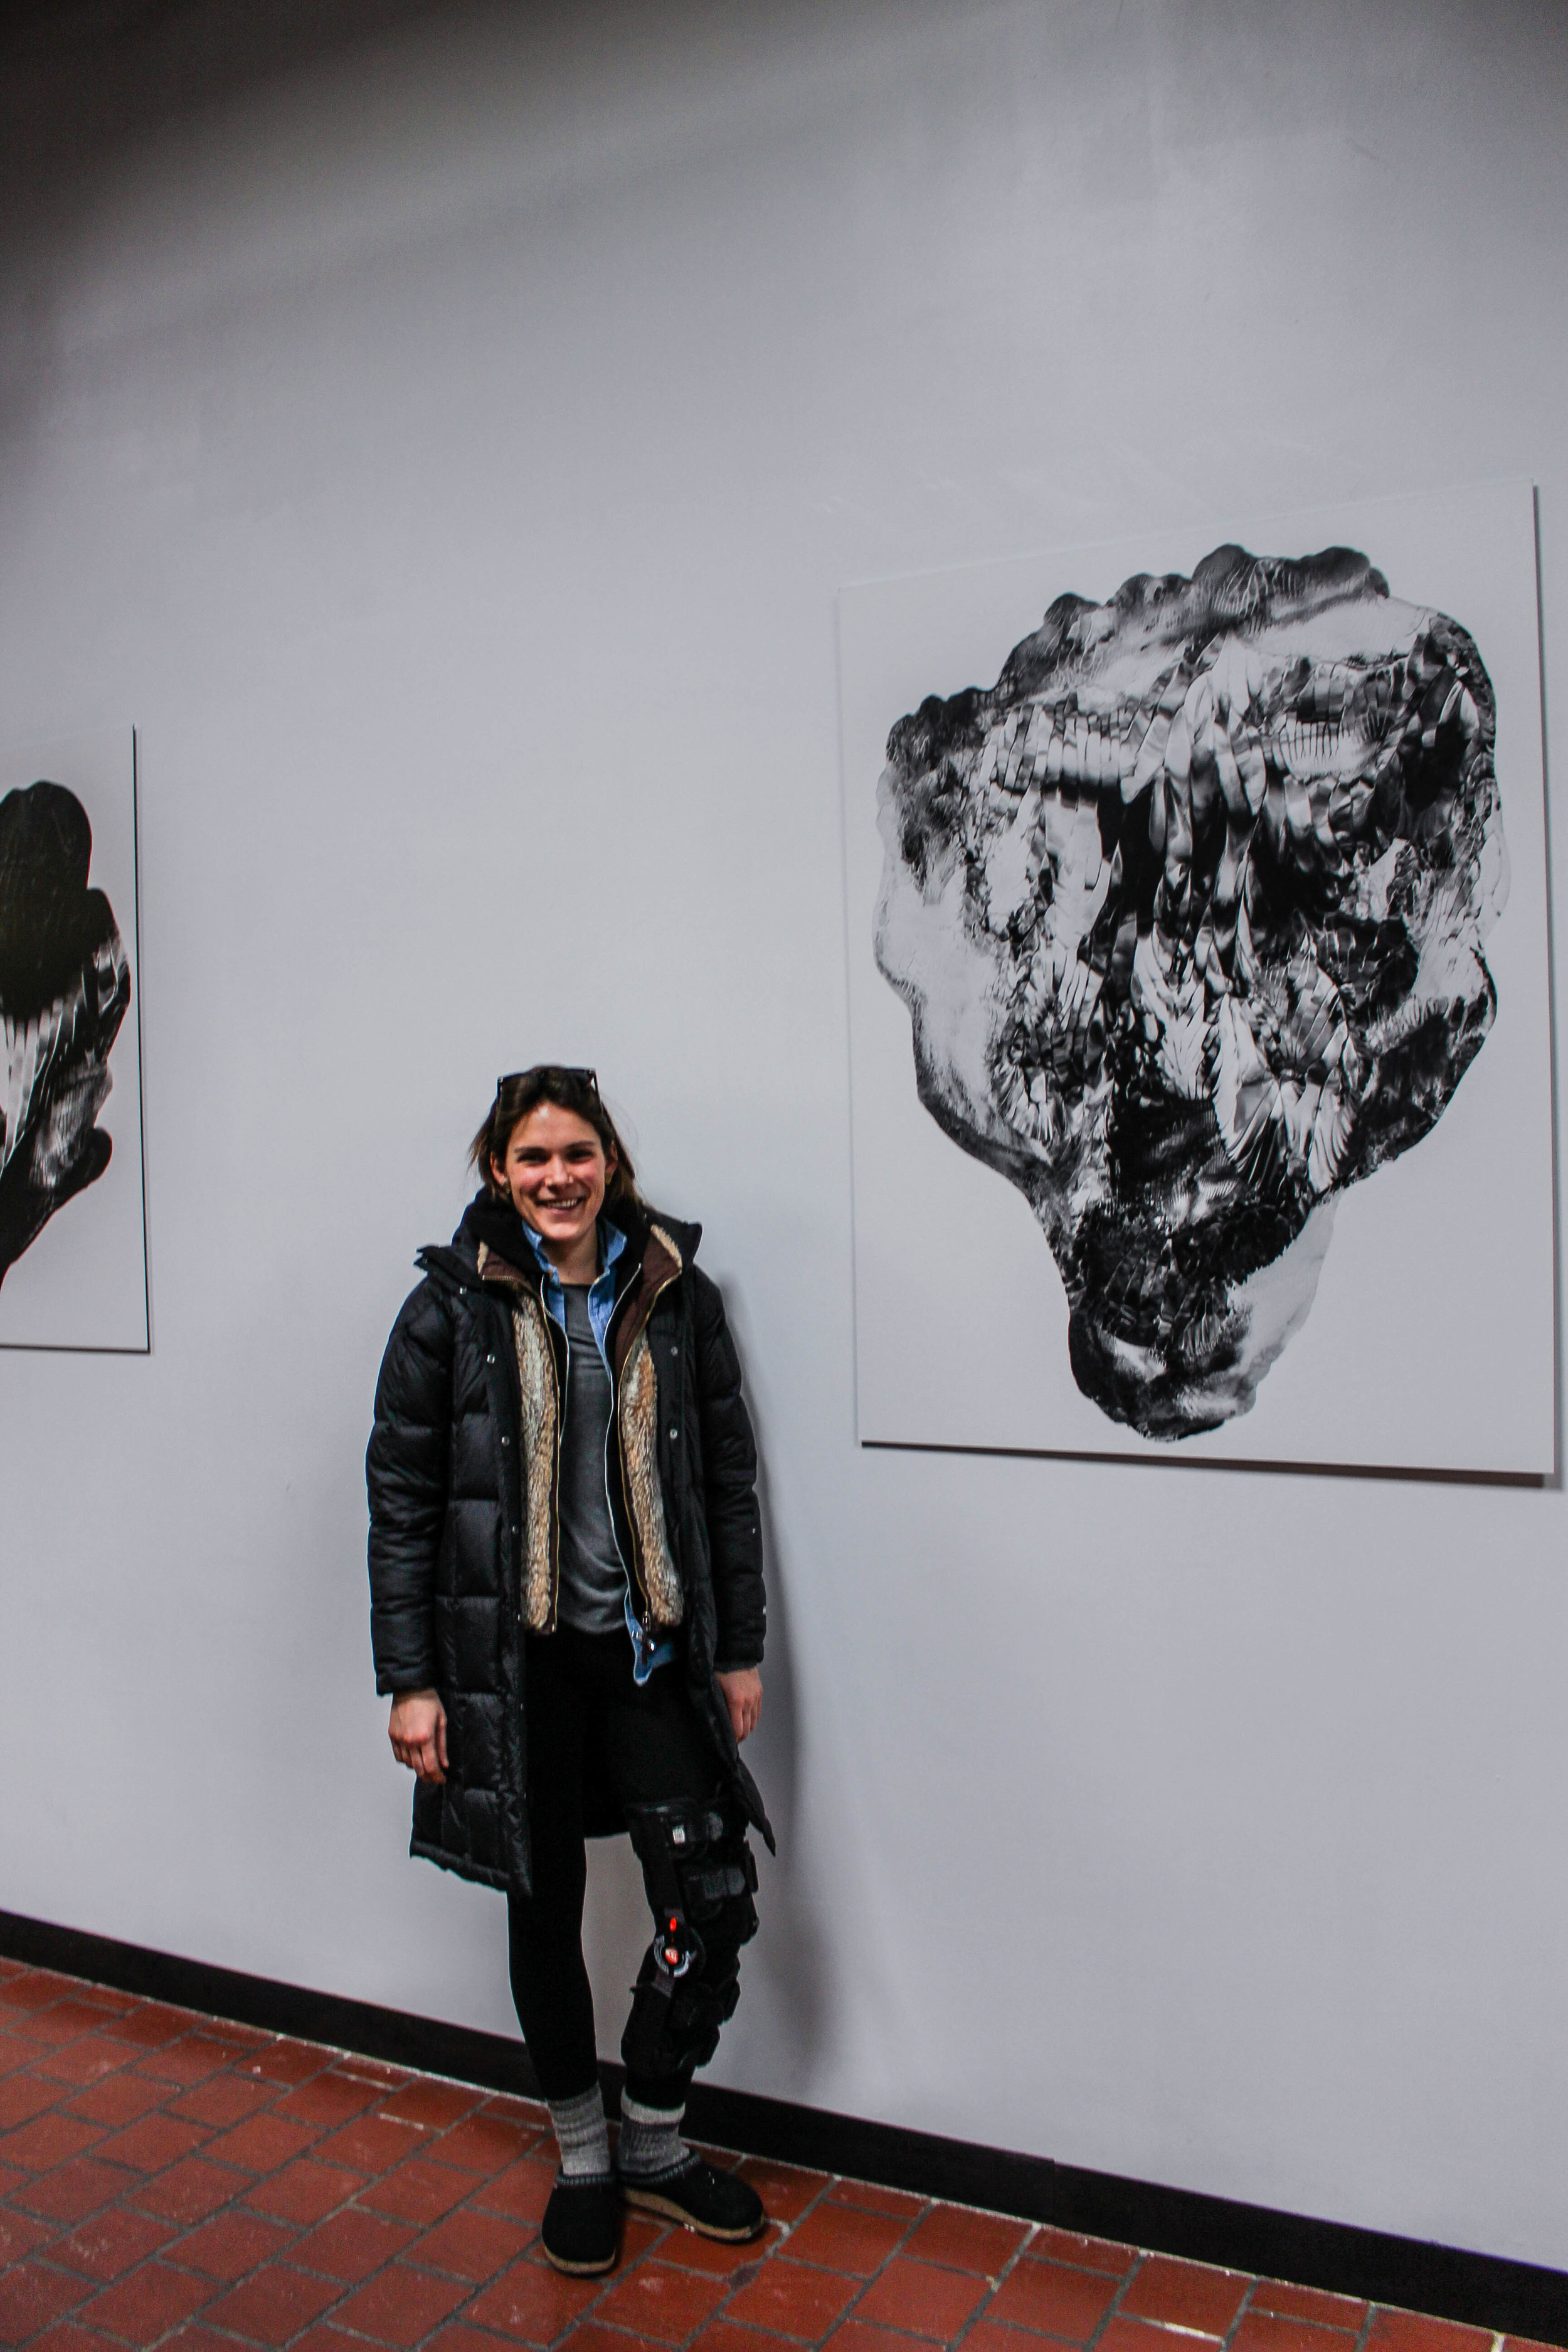 My brilliant Antonia next to one of her pieces.